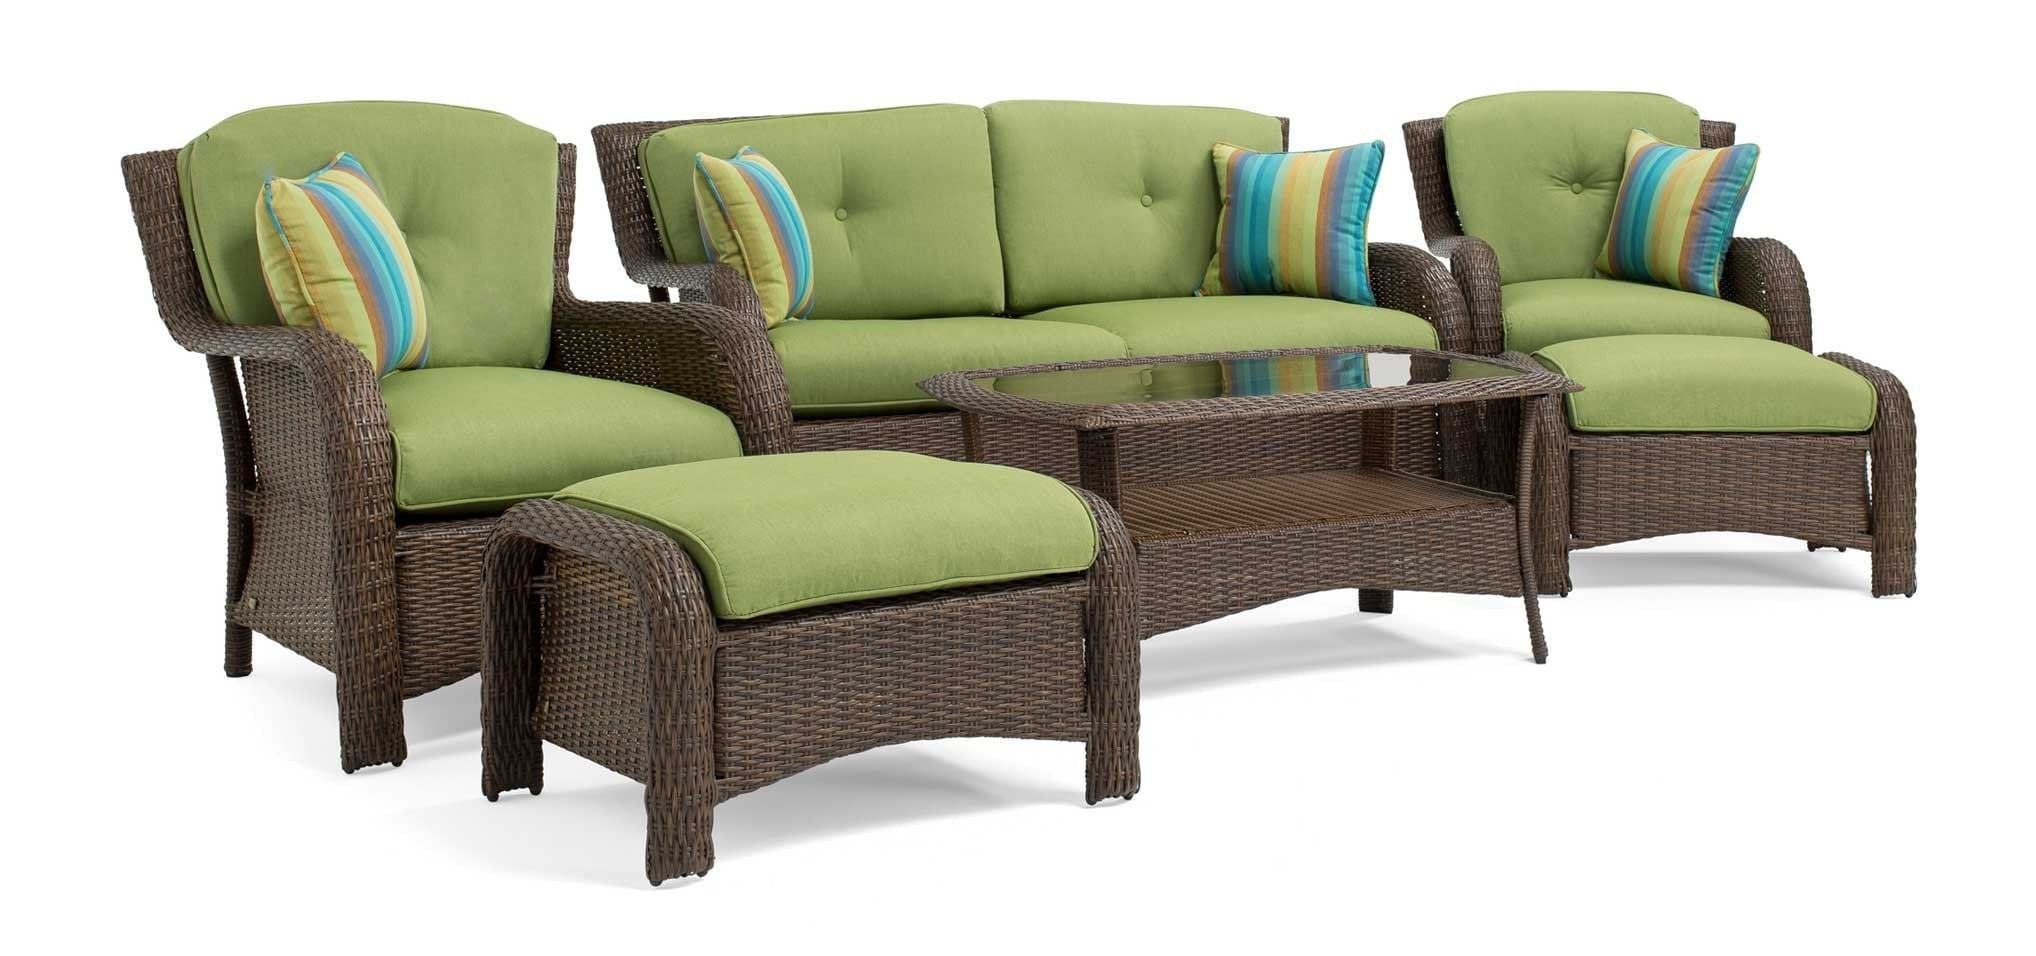 cilantro conversation patio green sawyer resin set furniture lifestlye wicker piece detail products